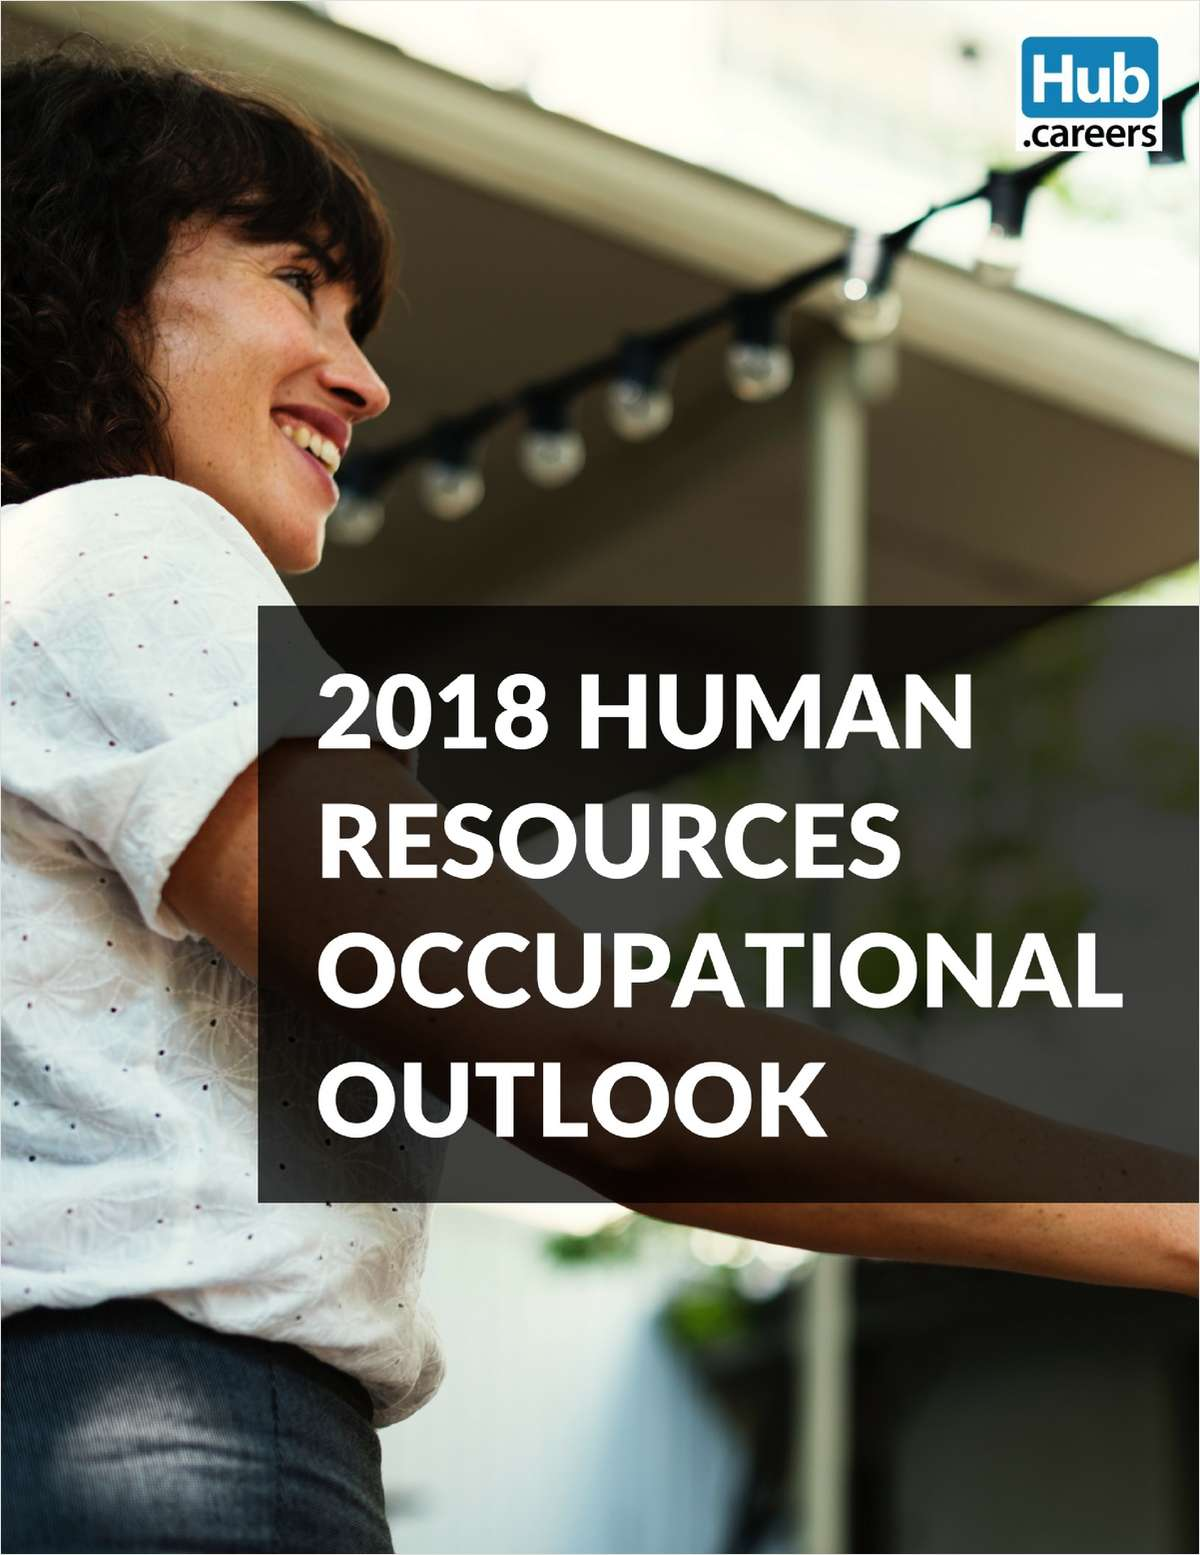 2018 Human Resources Occupational Outlook